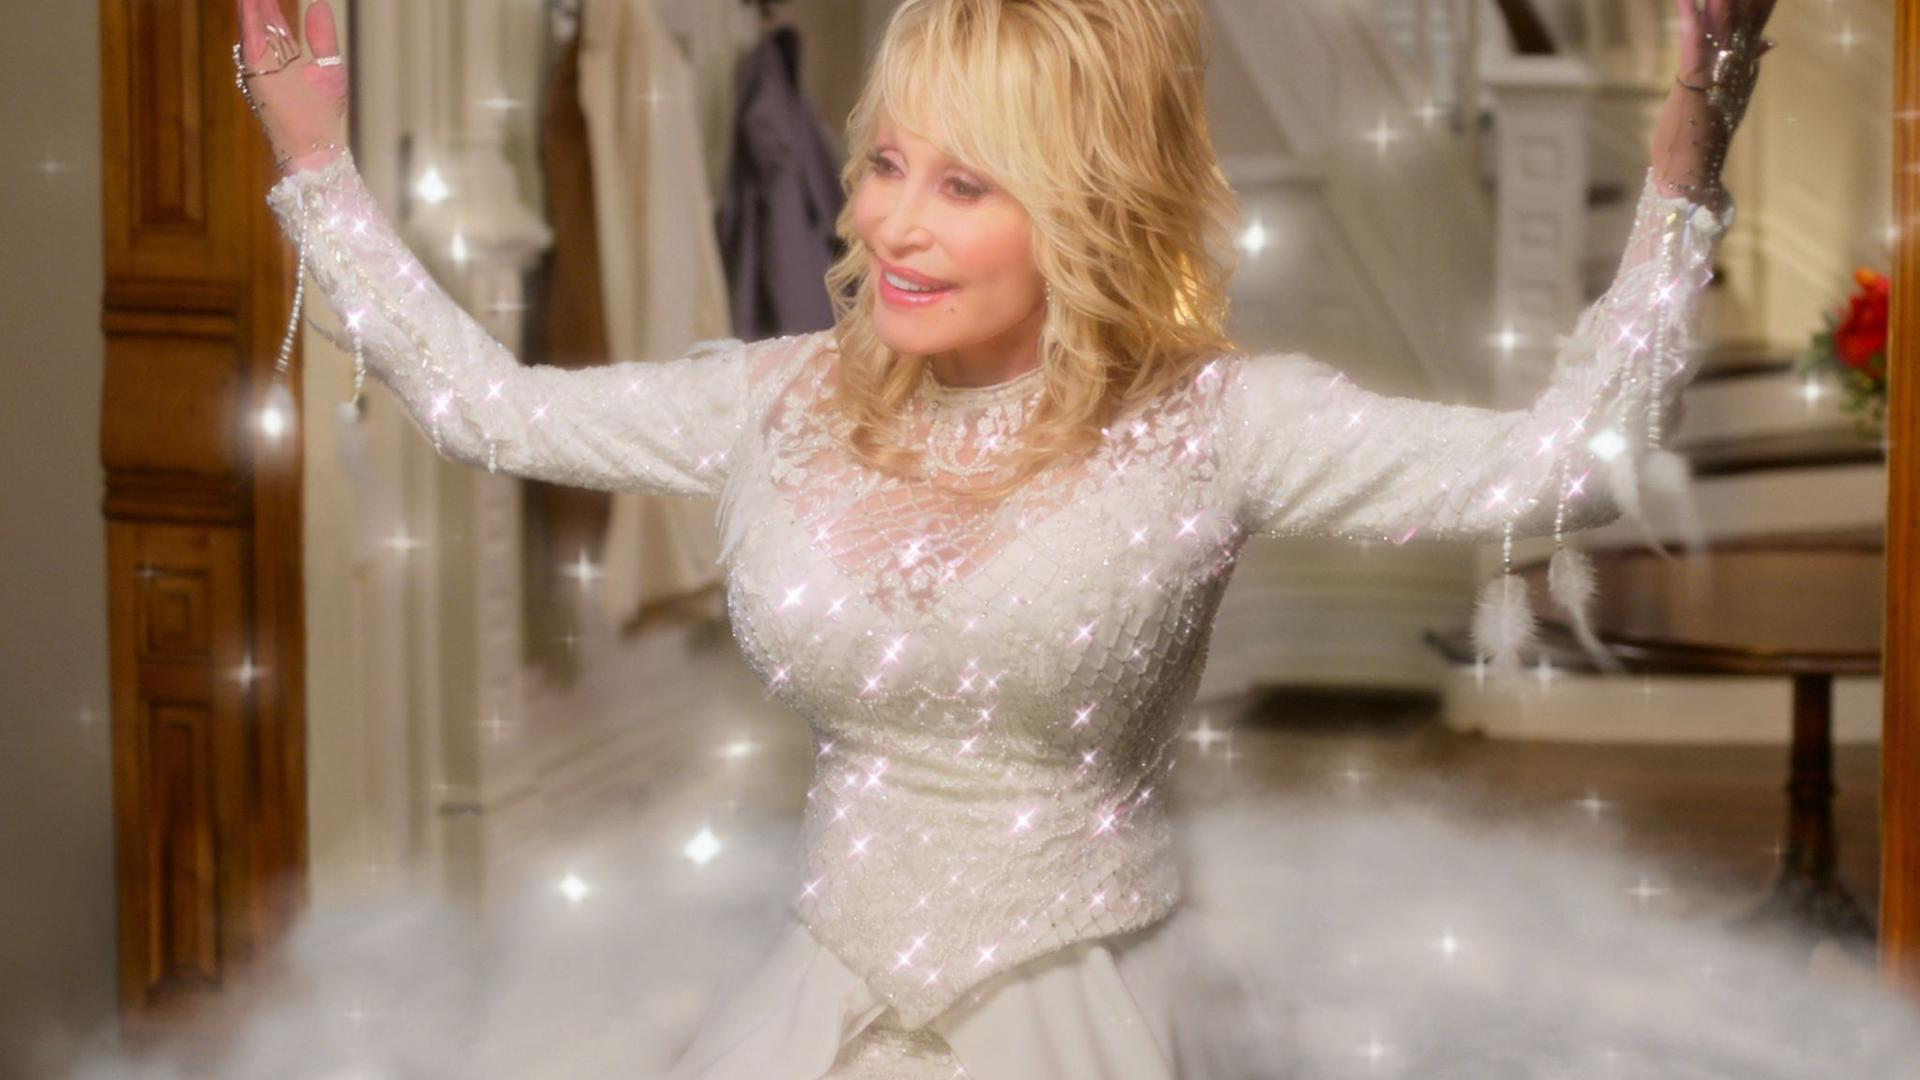 "Country-Legende Dolly Parton als Engel in einer Szene des Films ""Dolly Parton's Christmas on the Square"" (undatierte Filmszene)."